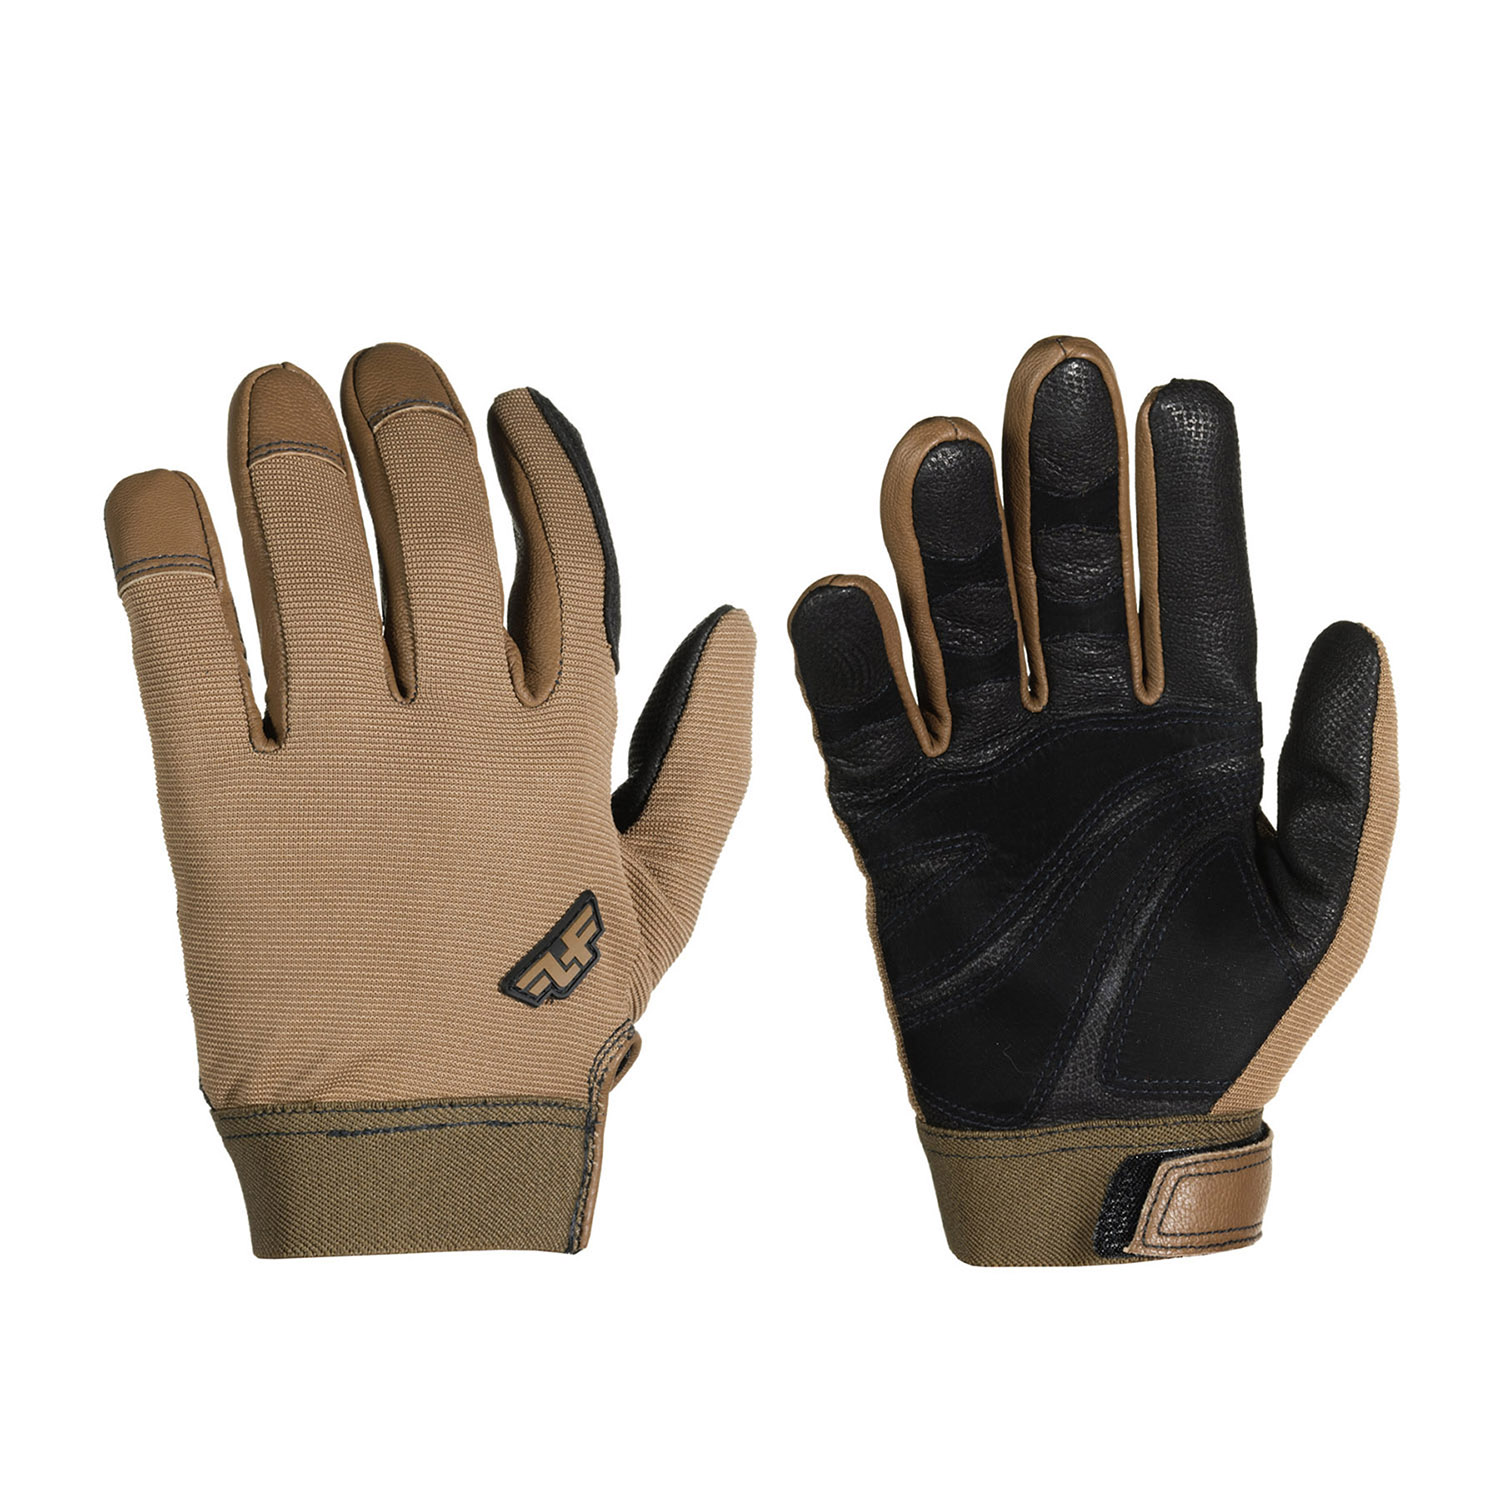 Line of Fire Tactical Light Duty Gloves